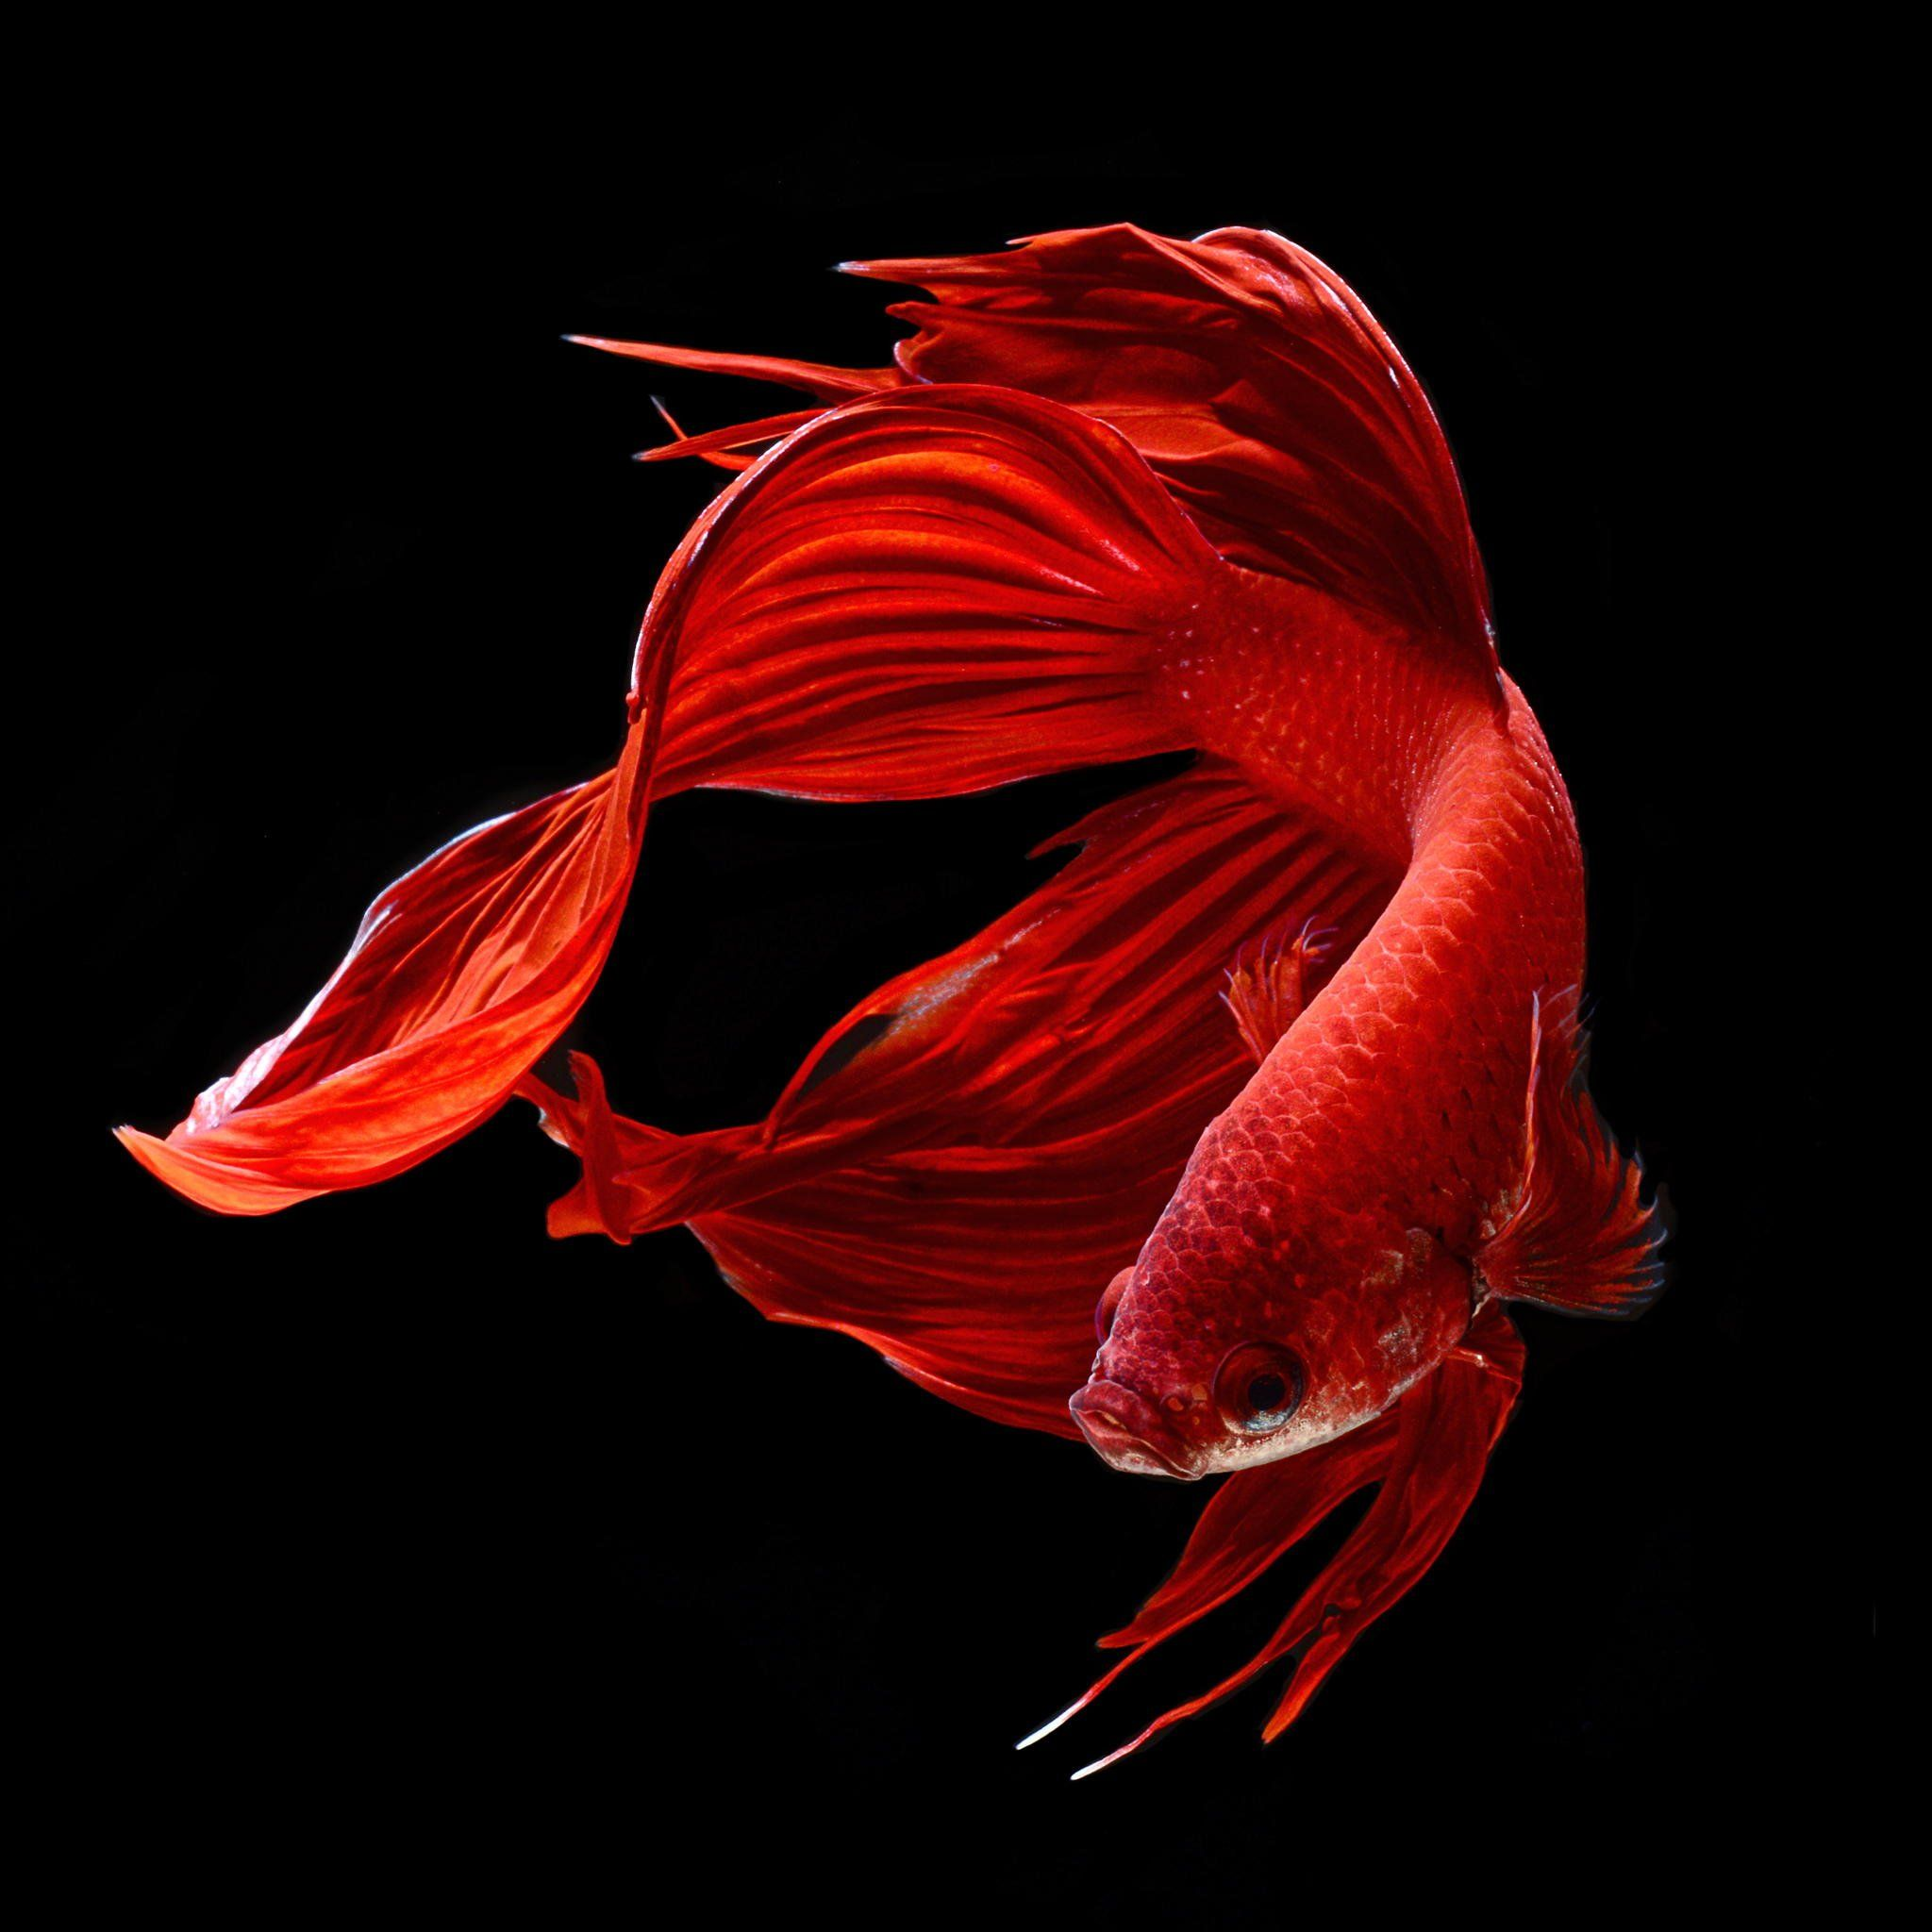 Betta Fish Hd Wallpaper Betta Ca Vang động Vật